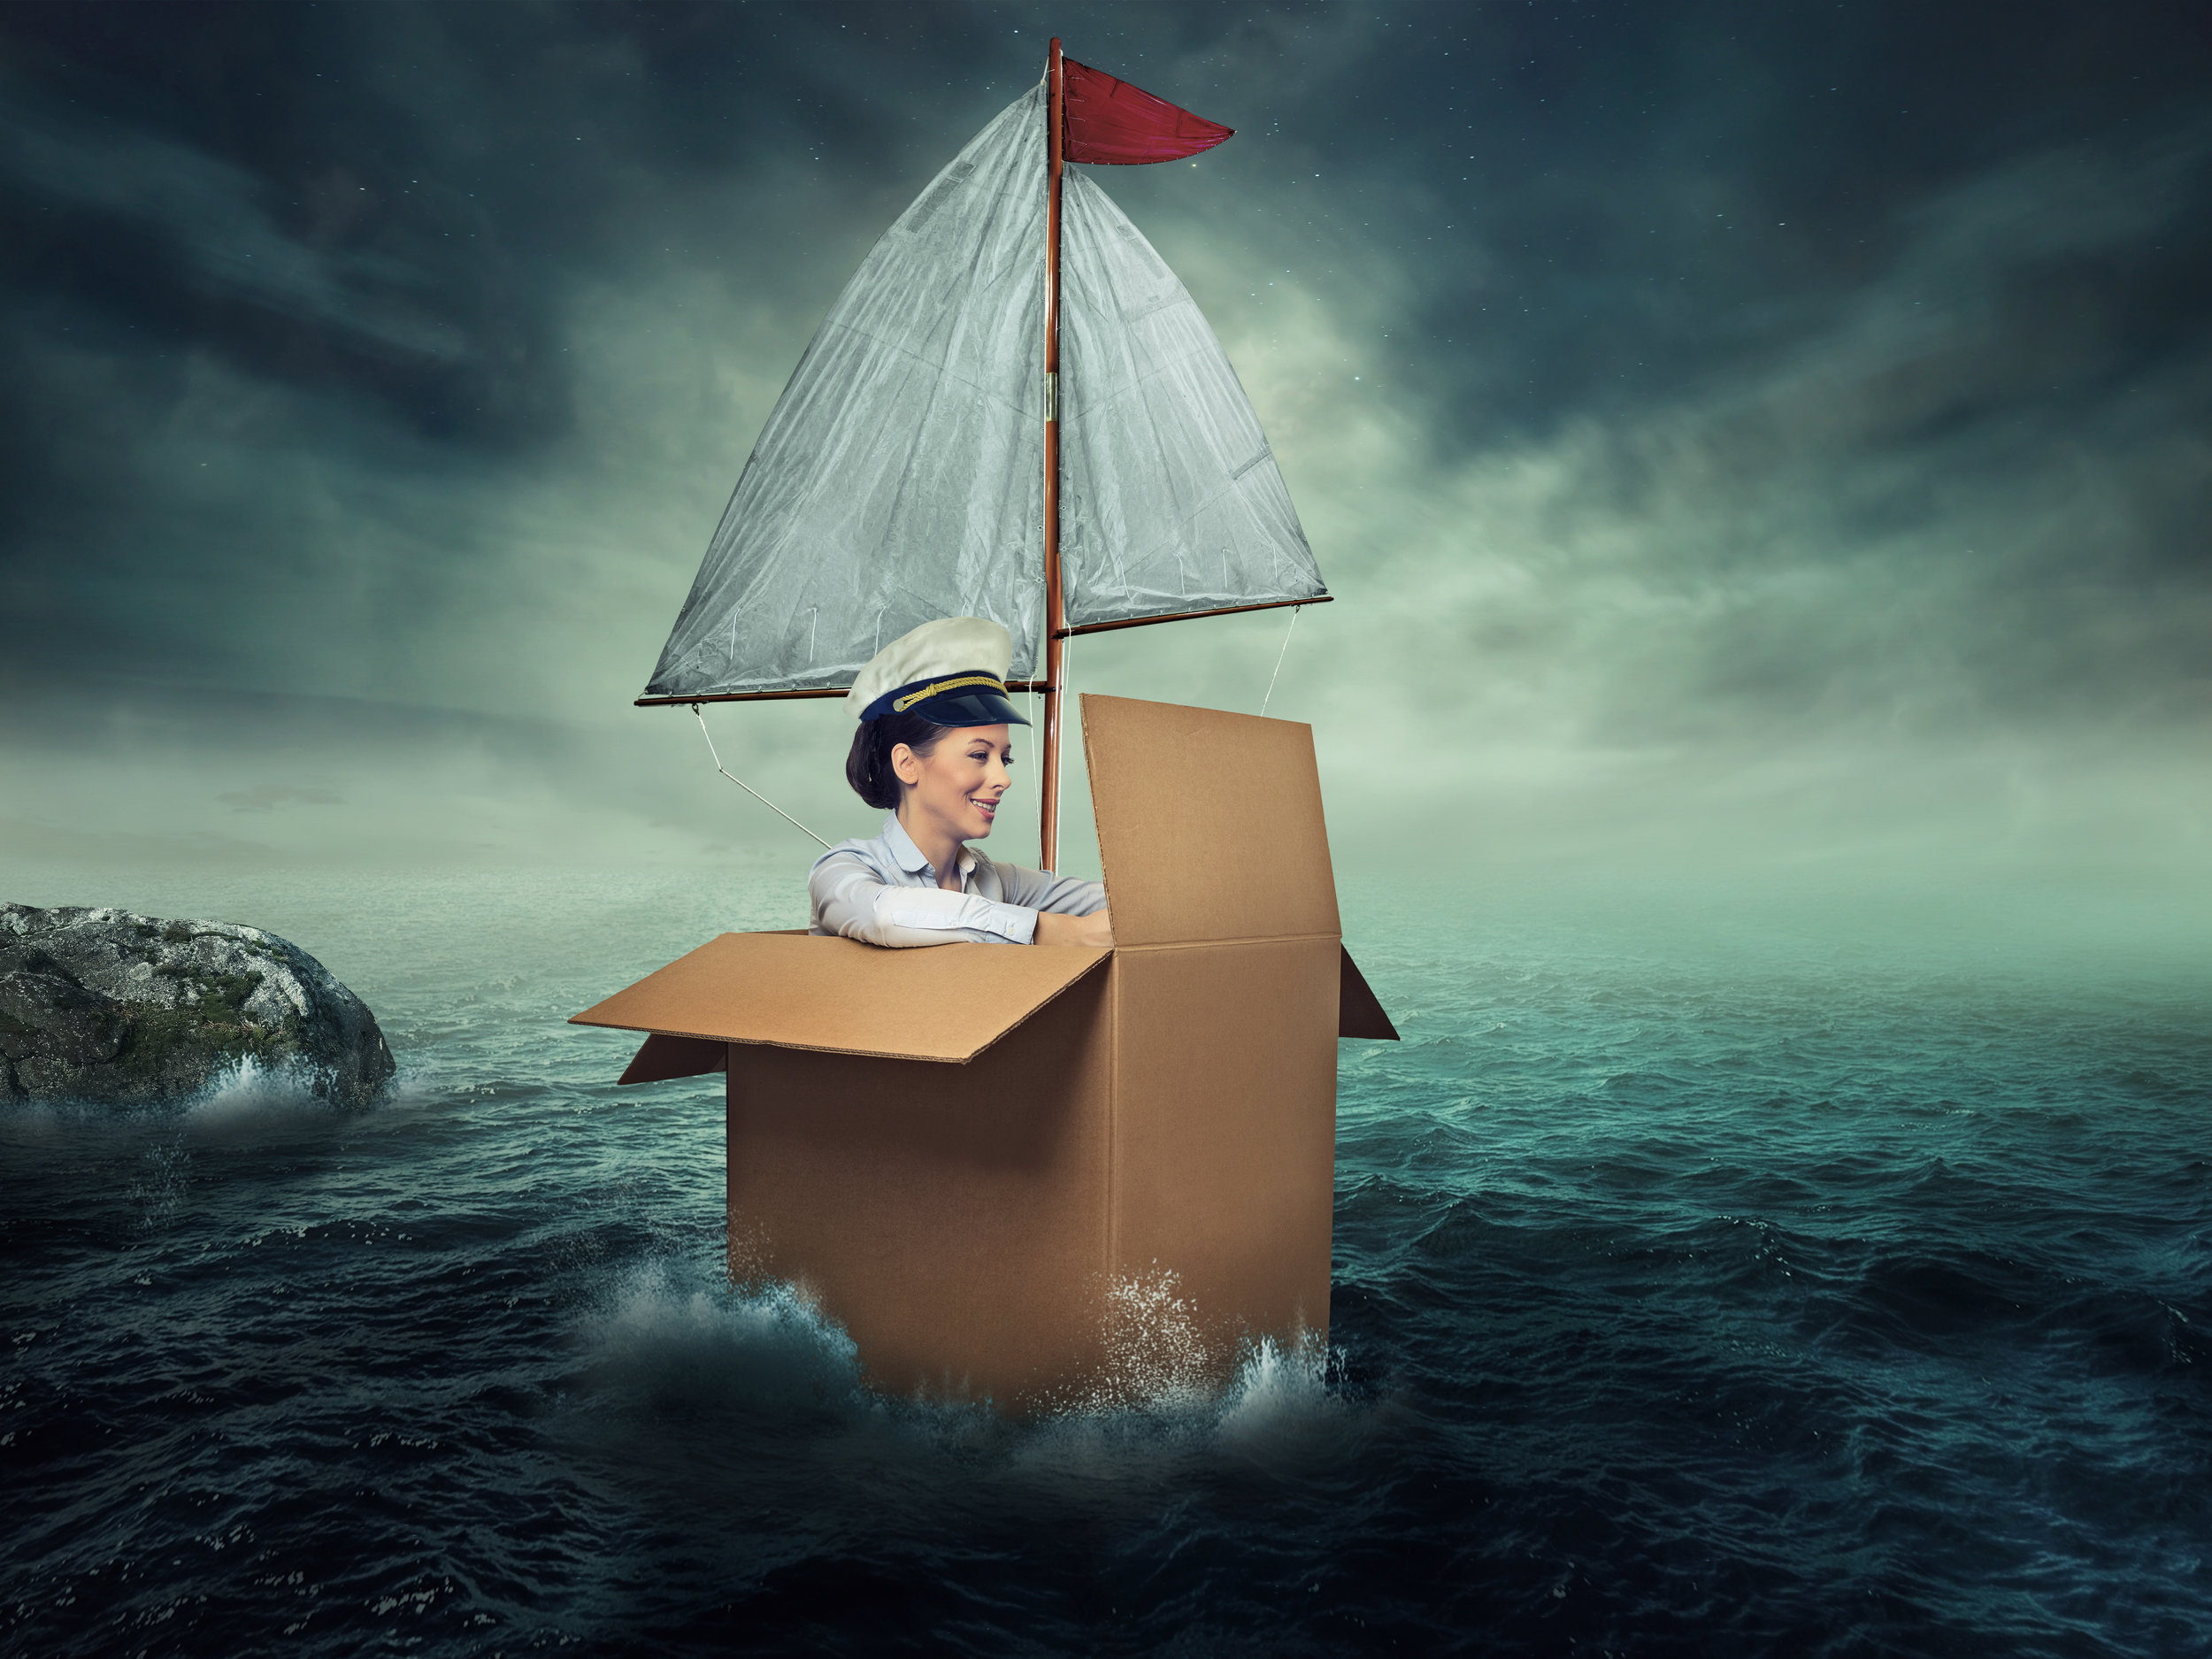 """The title is """"woman traveling by water,"""" which is an interesting way of putting it. Via iStock."""